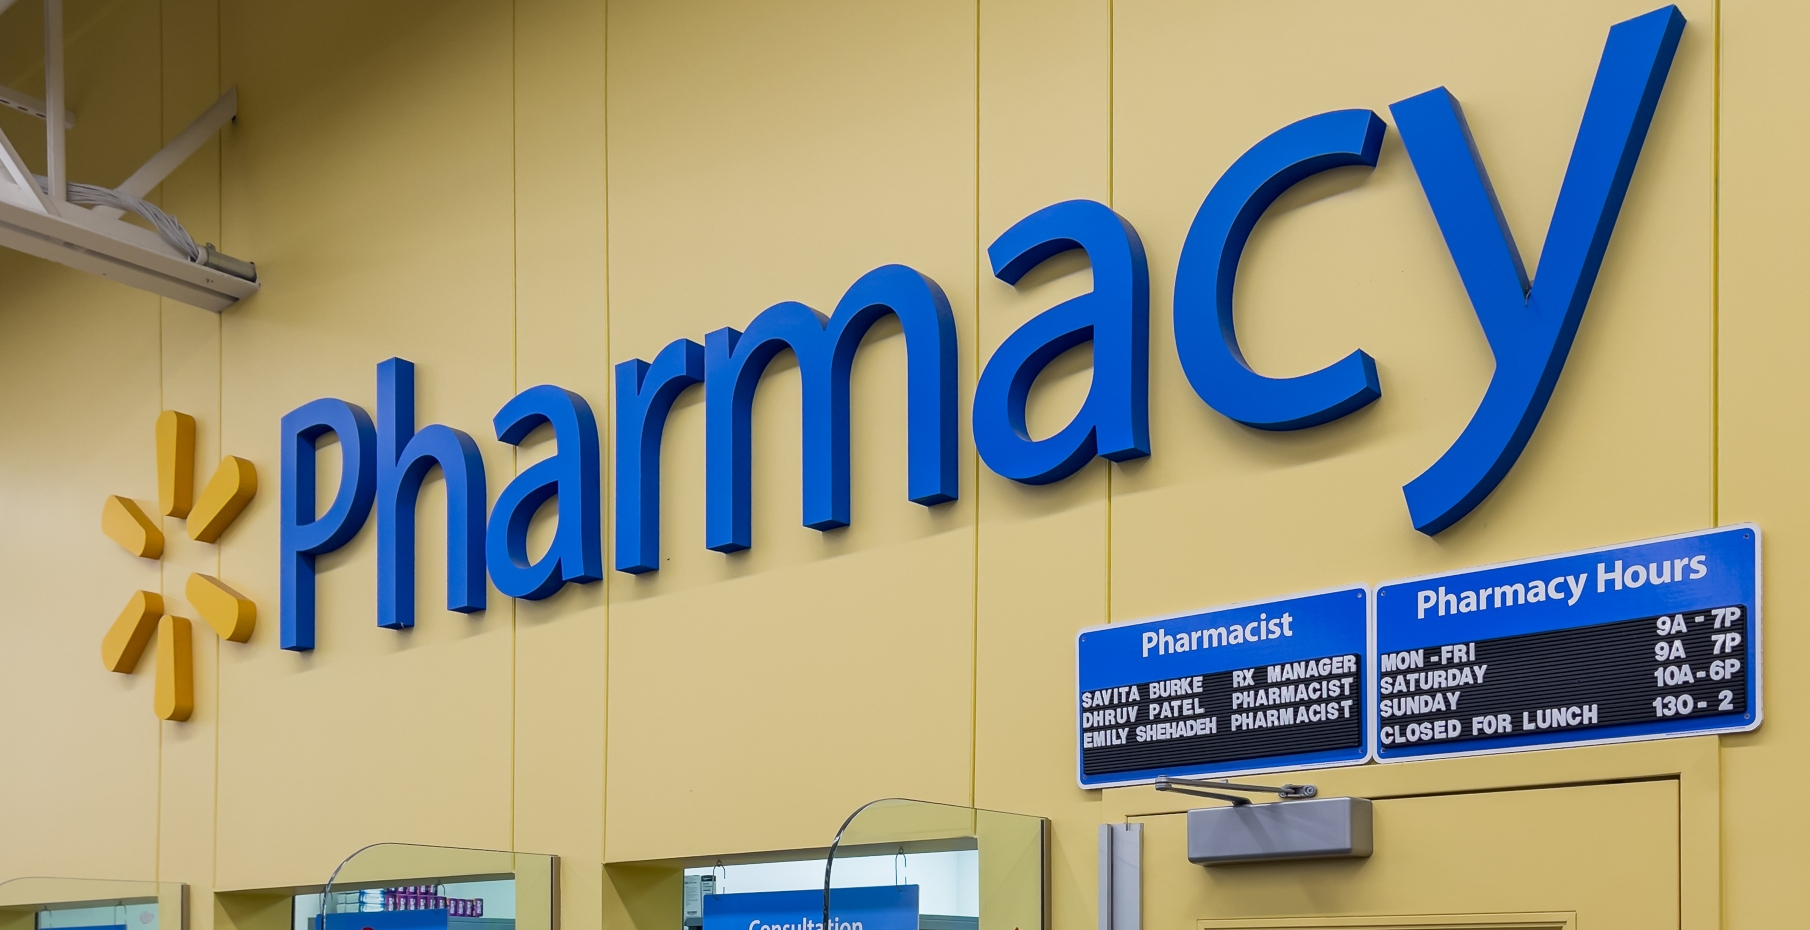 Walmart is facing a major lawsuit filed against them by the US Department of Justice. Walmart is facing allegations that they failed to screen prescriptions properly and did not report suspicious activity by doctors who repeatedly prescribed opioids for illegitimate medical purposes. Walmart could potentially lose billions if the allegations prove true.